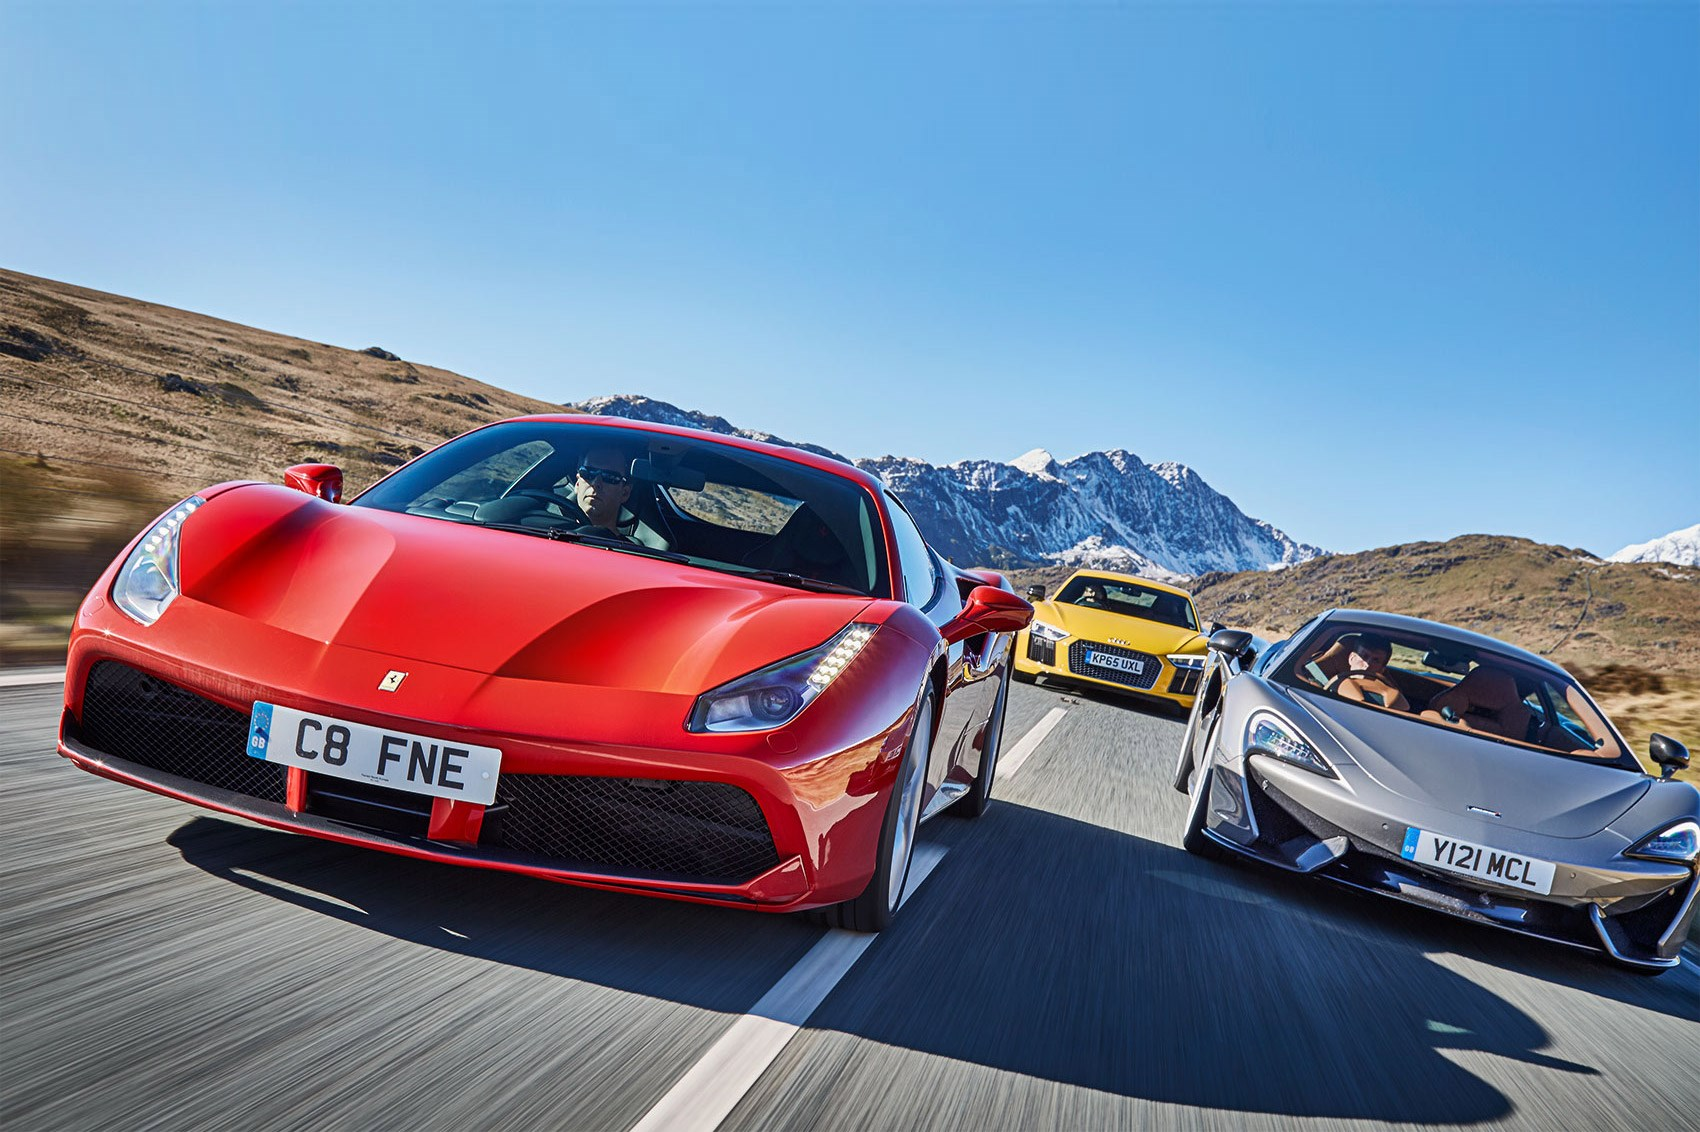 Our Kind Of Eu Summit Ferrari 488 Gtb Vs Mclaren 570s Vs